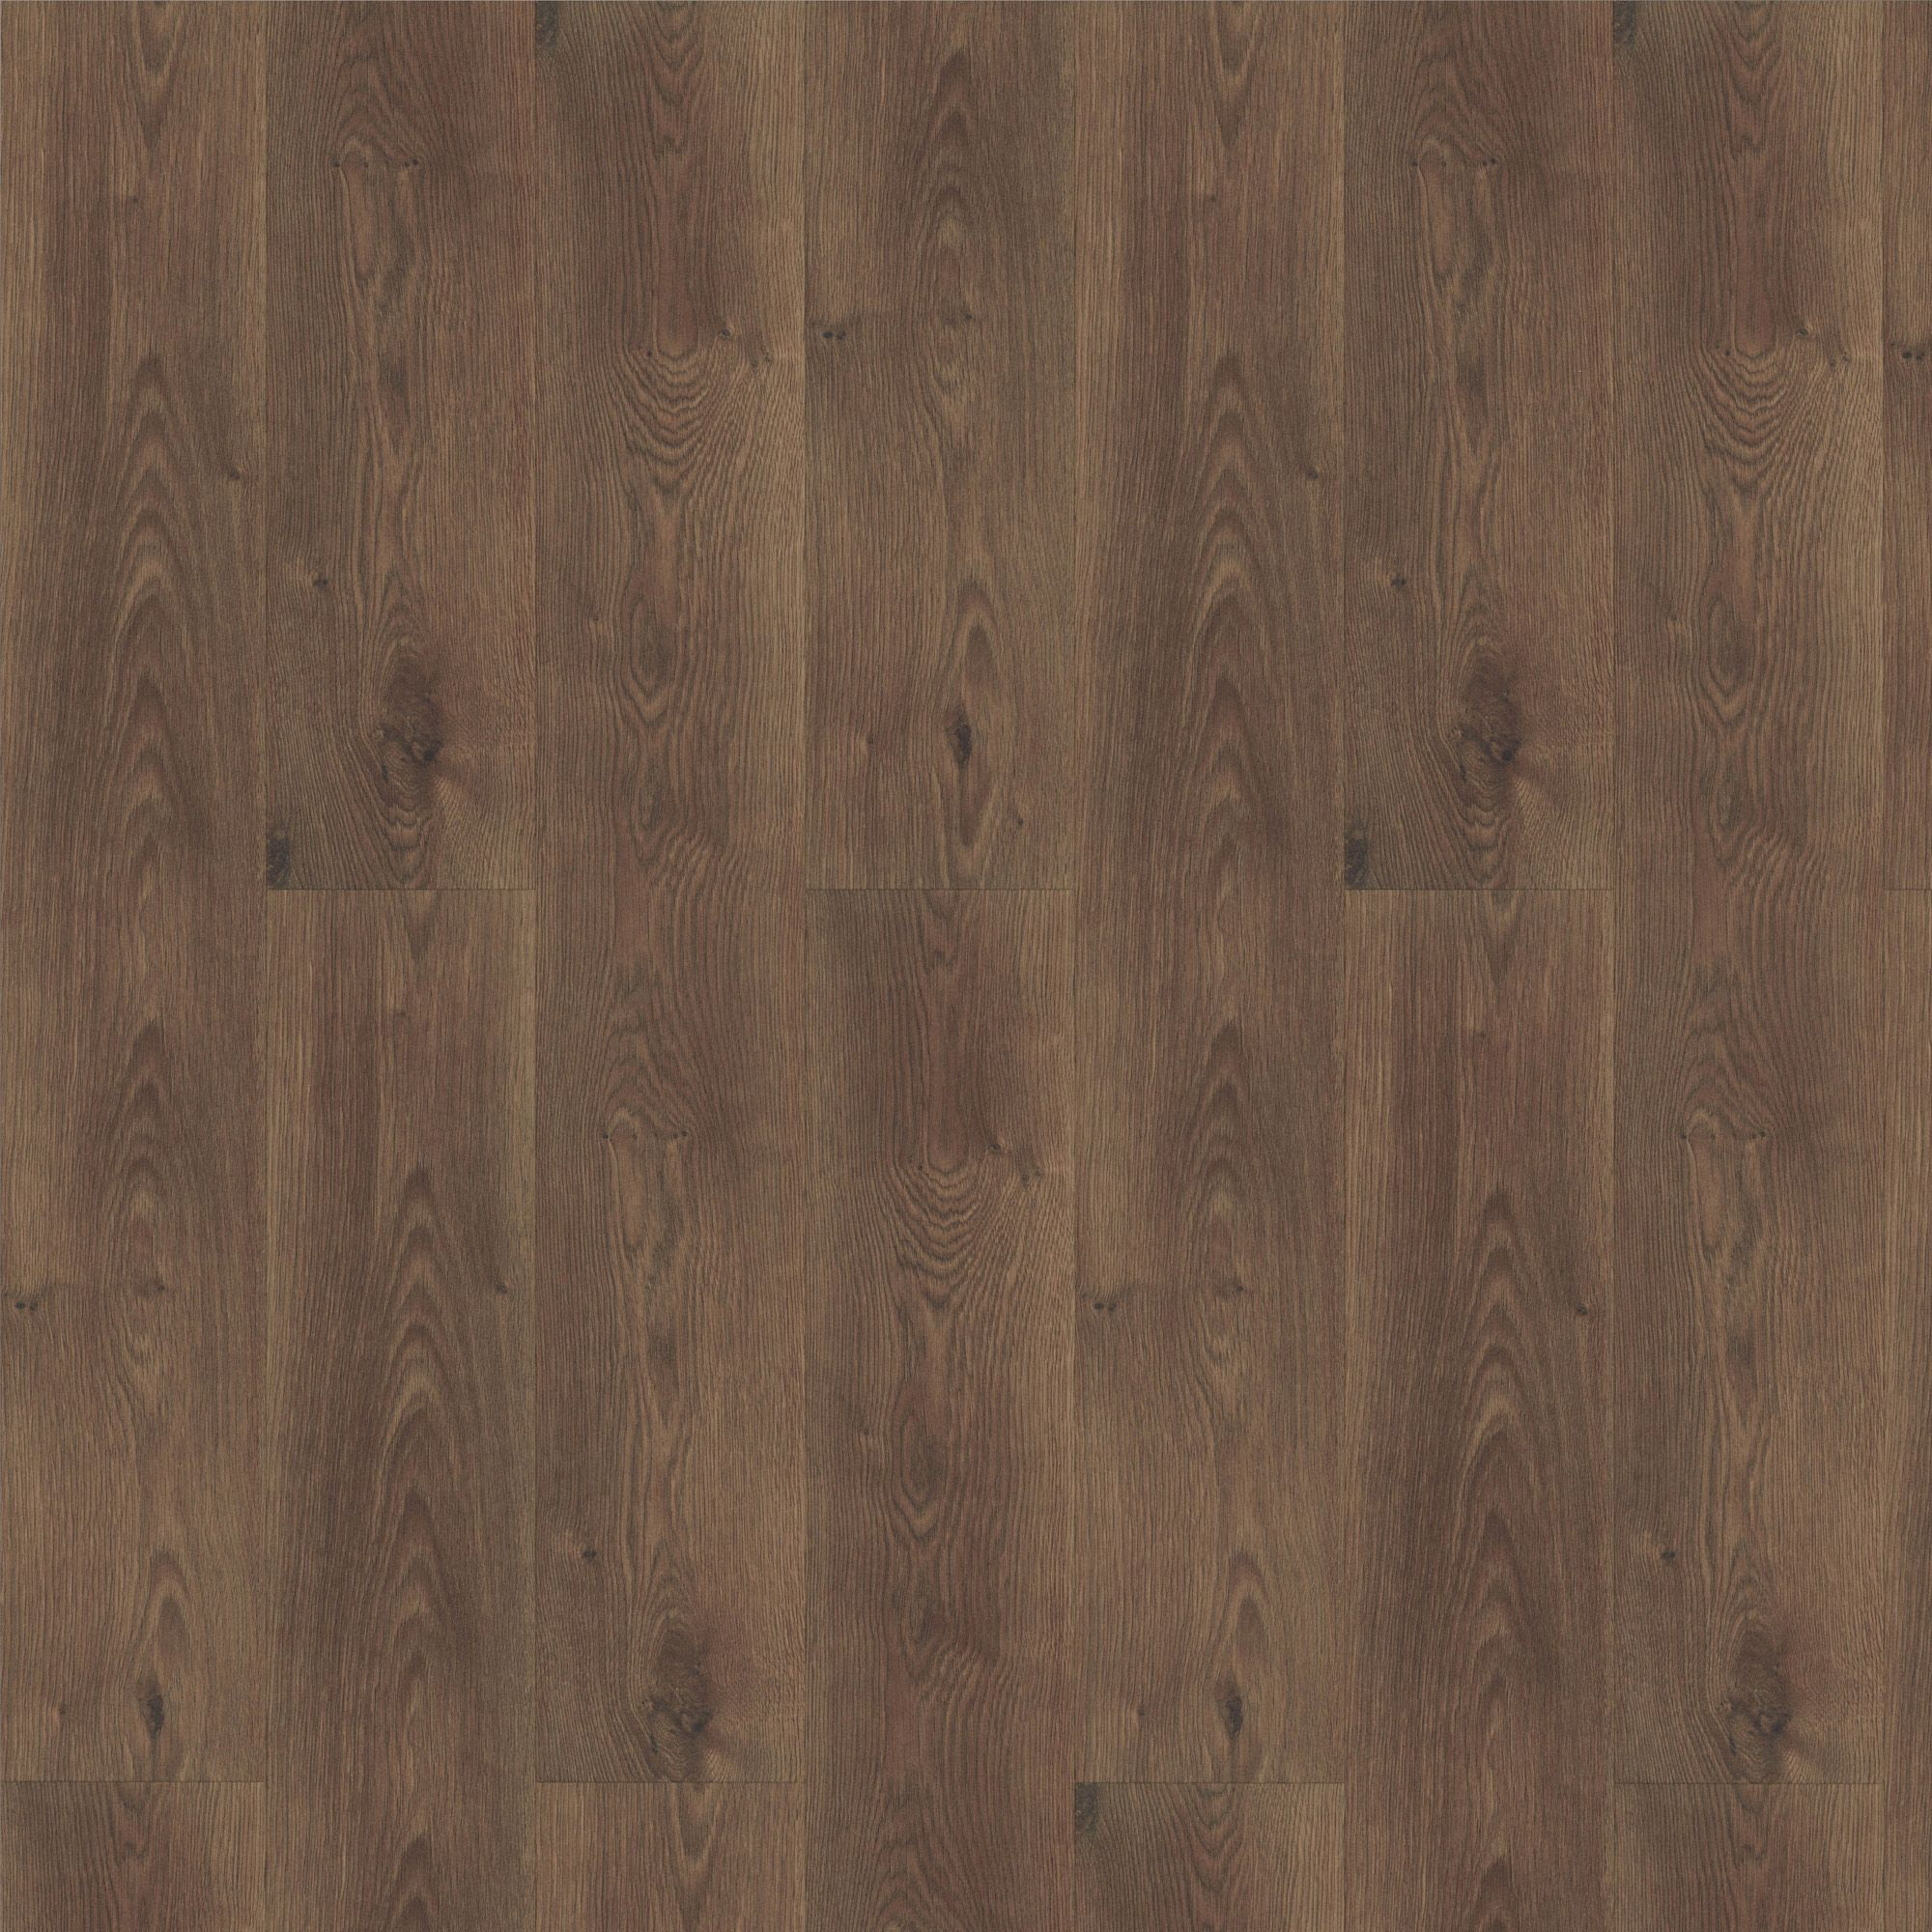 Overture Virginia Oak Effect Laminate Flooring 1 25 M² Pack